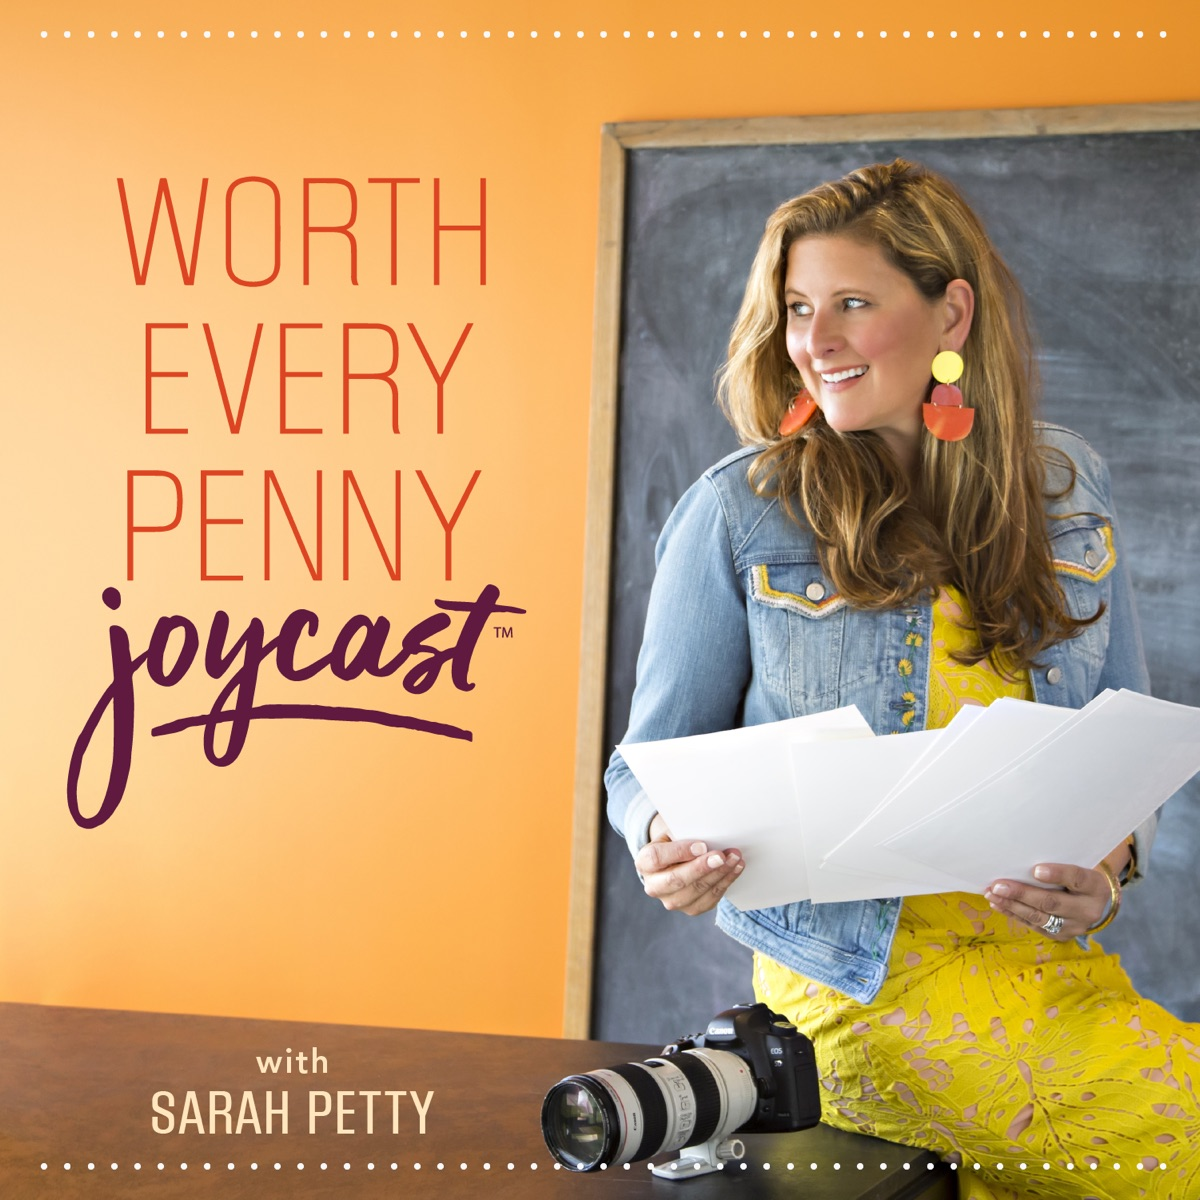 Worth Every Penny Joycast – Podcast – Sarah Petty Podcast for photographers